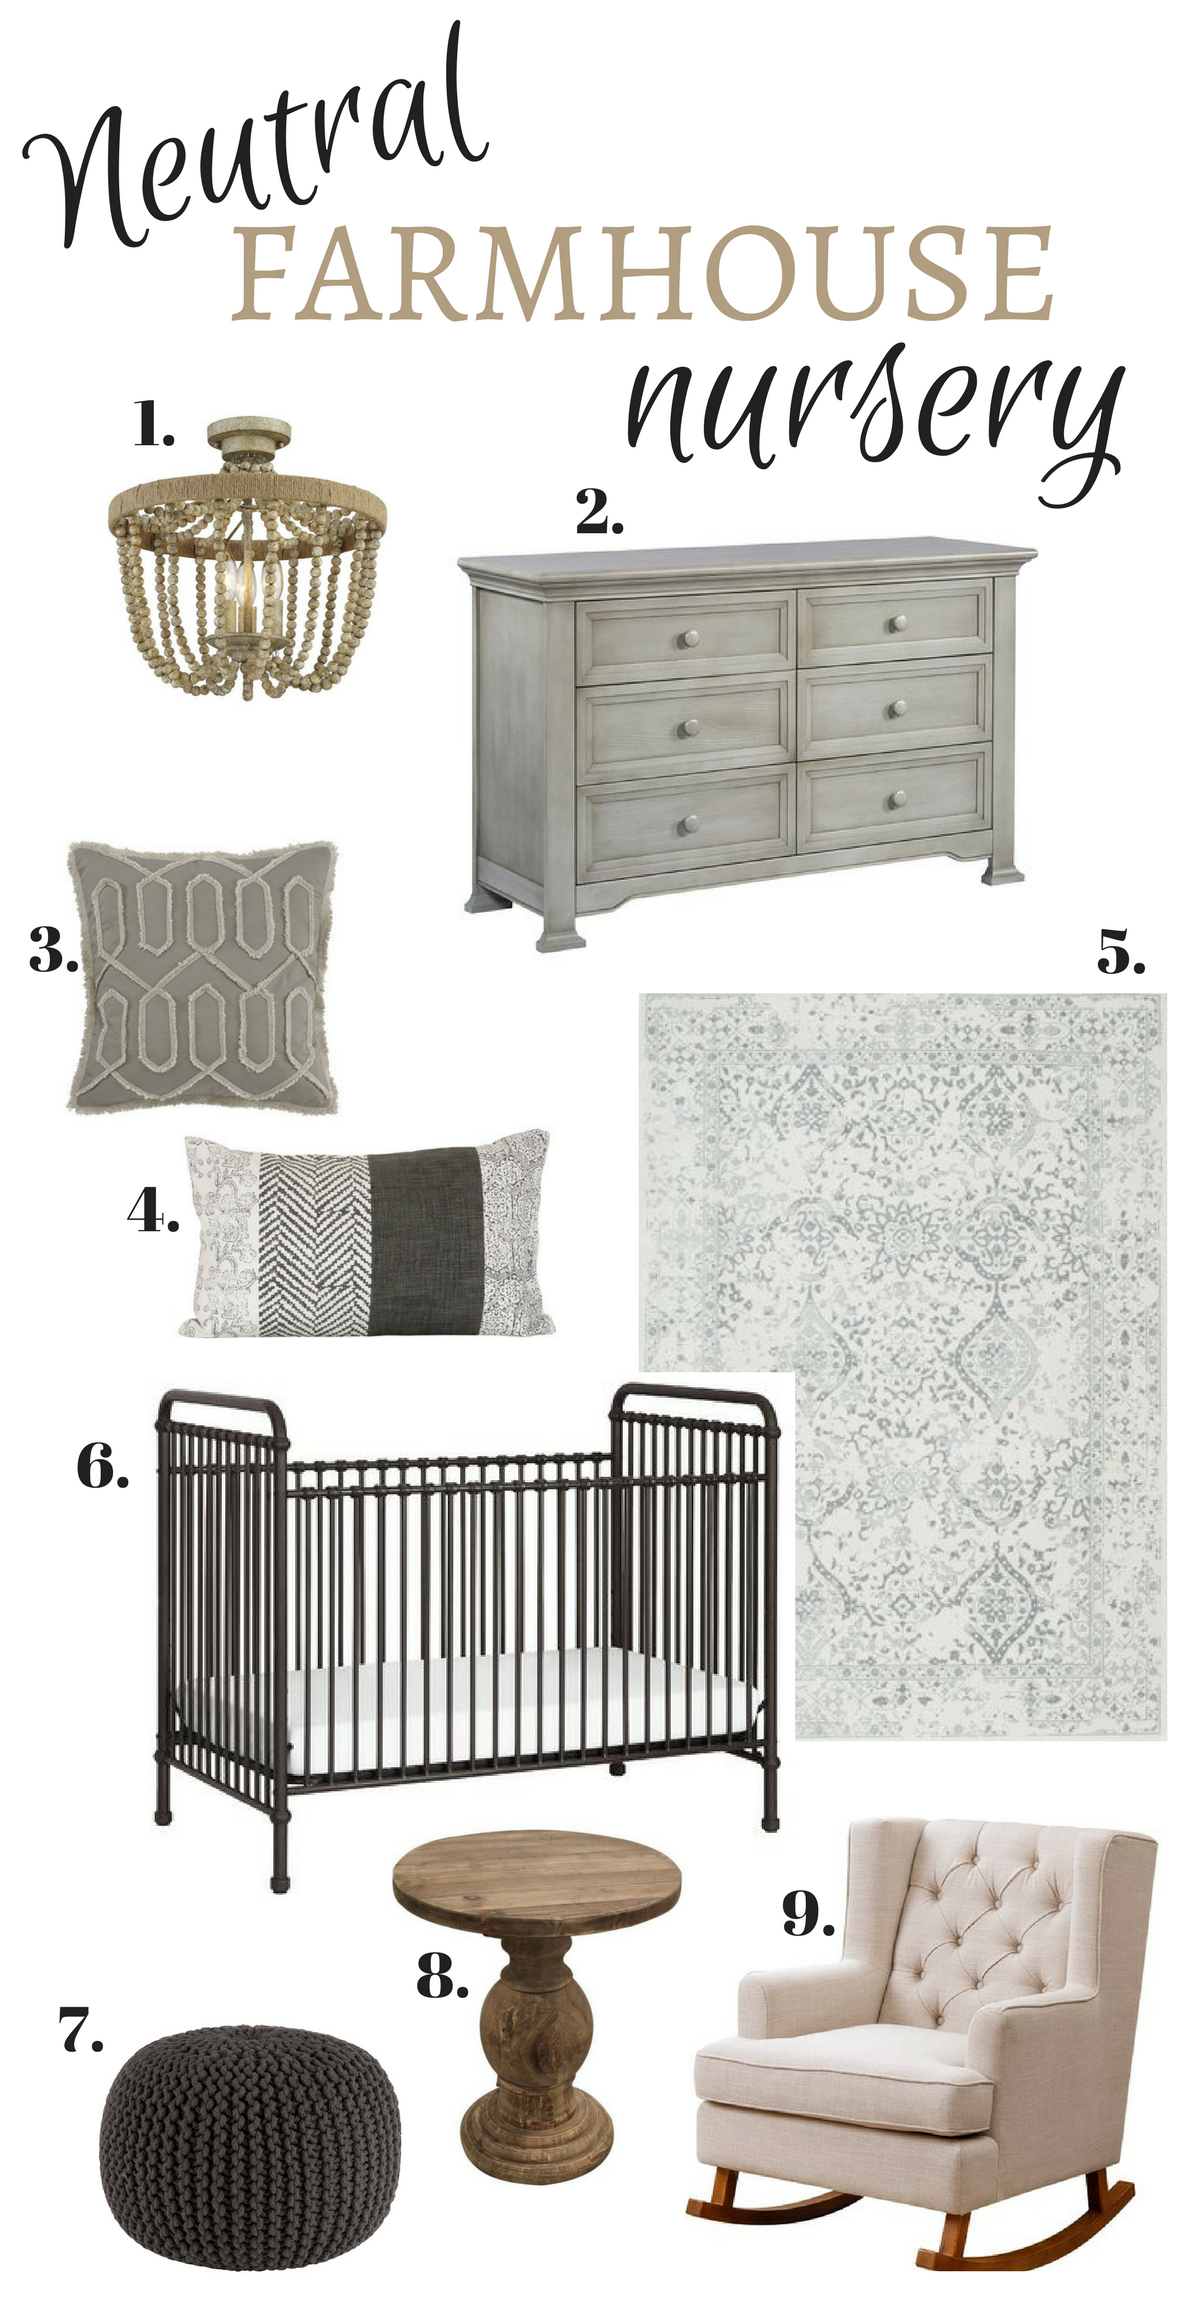 neutral farmhouse nursery